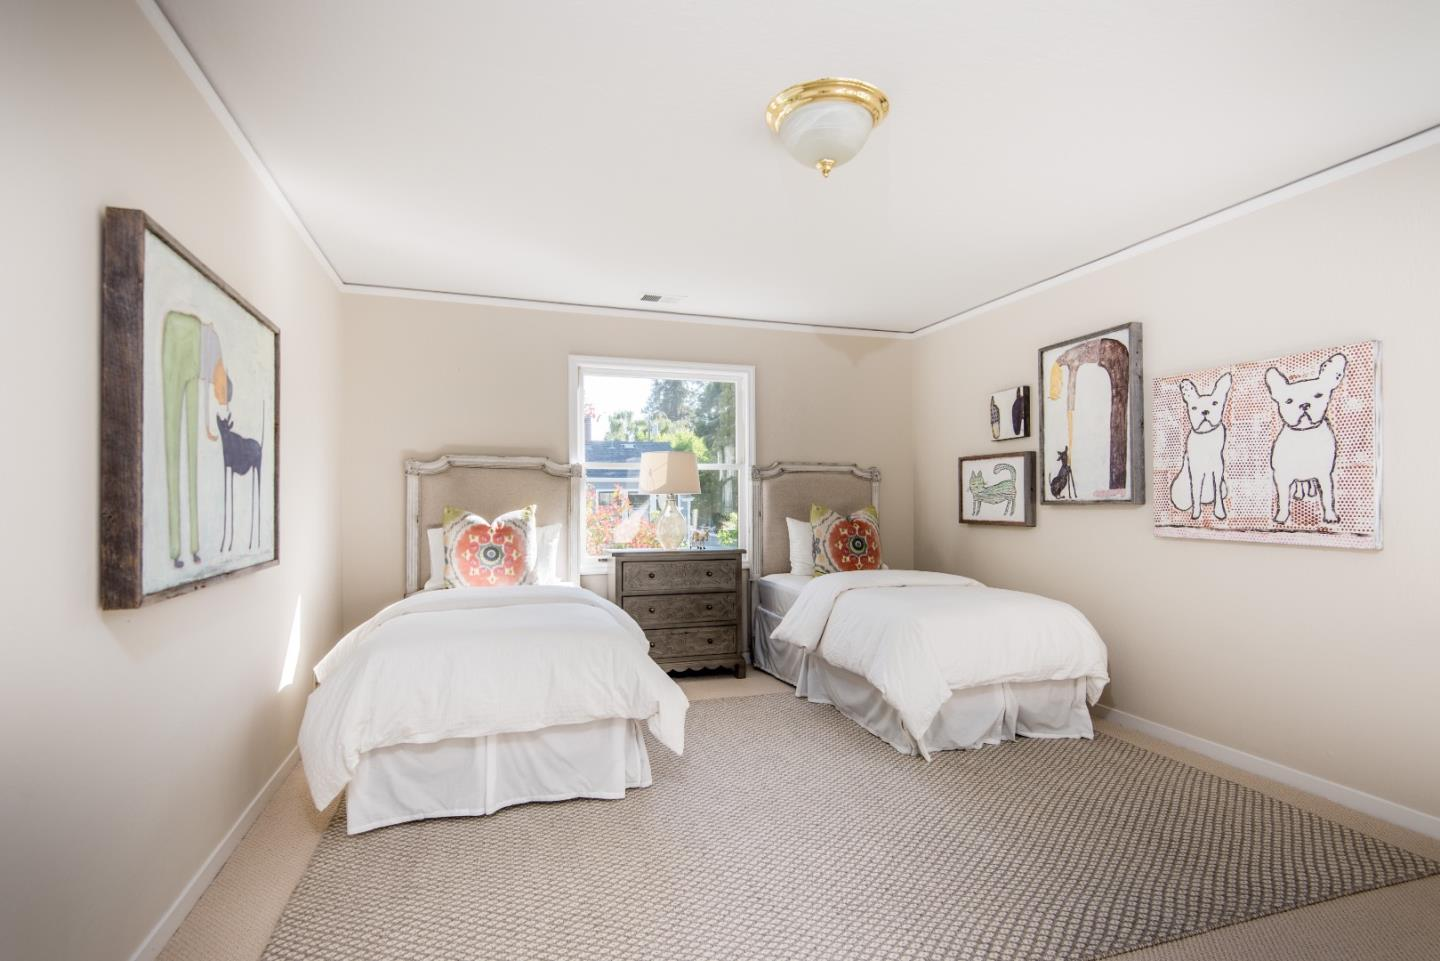 Additional photo for property listing at 2277 Bryant Street  Palo Alto, California 94301 Estados Unidos